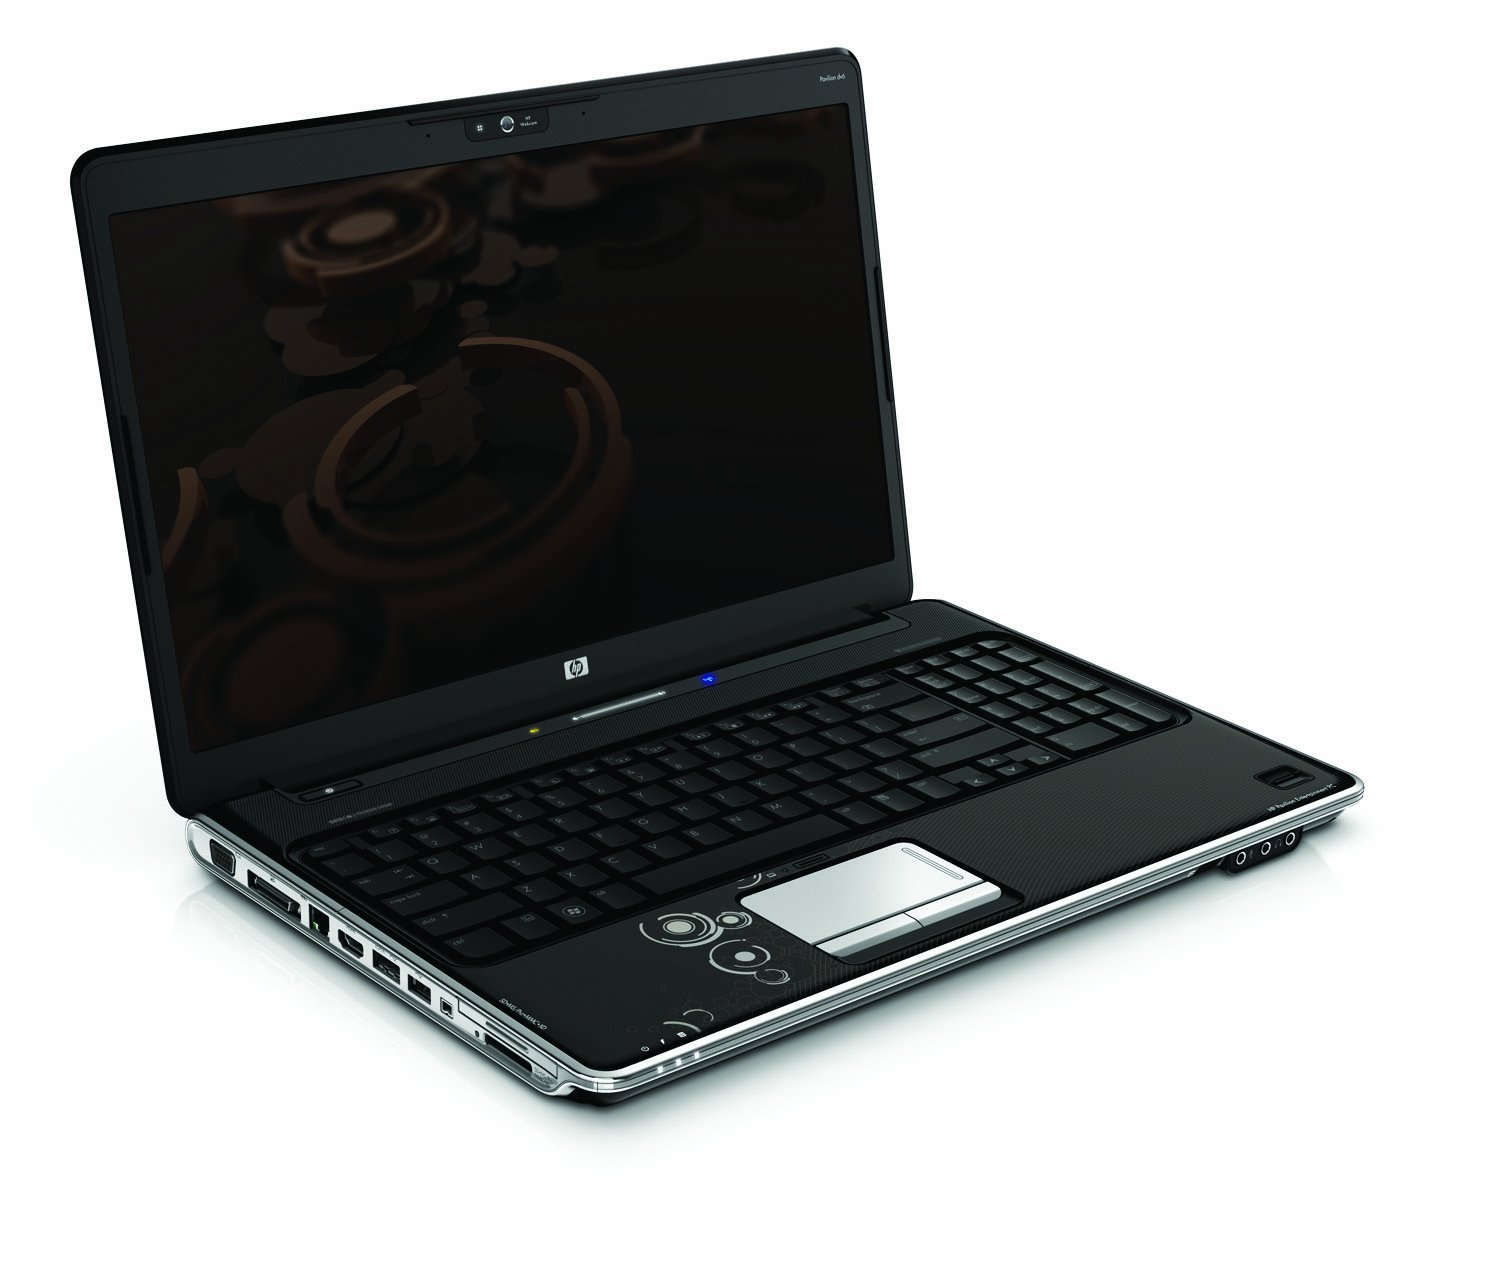 Amazon.com: HP Pavilion DV6-1354US 15.6-Inch Black Laptop - Up to 4 Hours  of Battery Life (Windows 7 Home Premium): Computers & Accessories